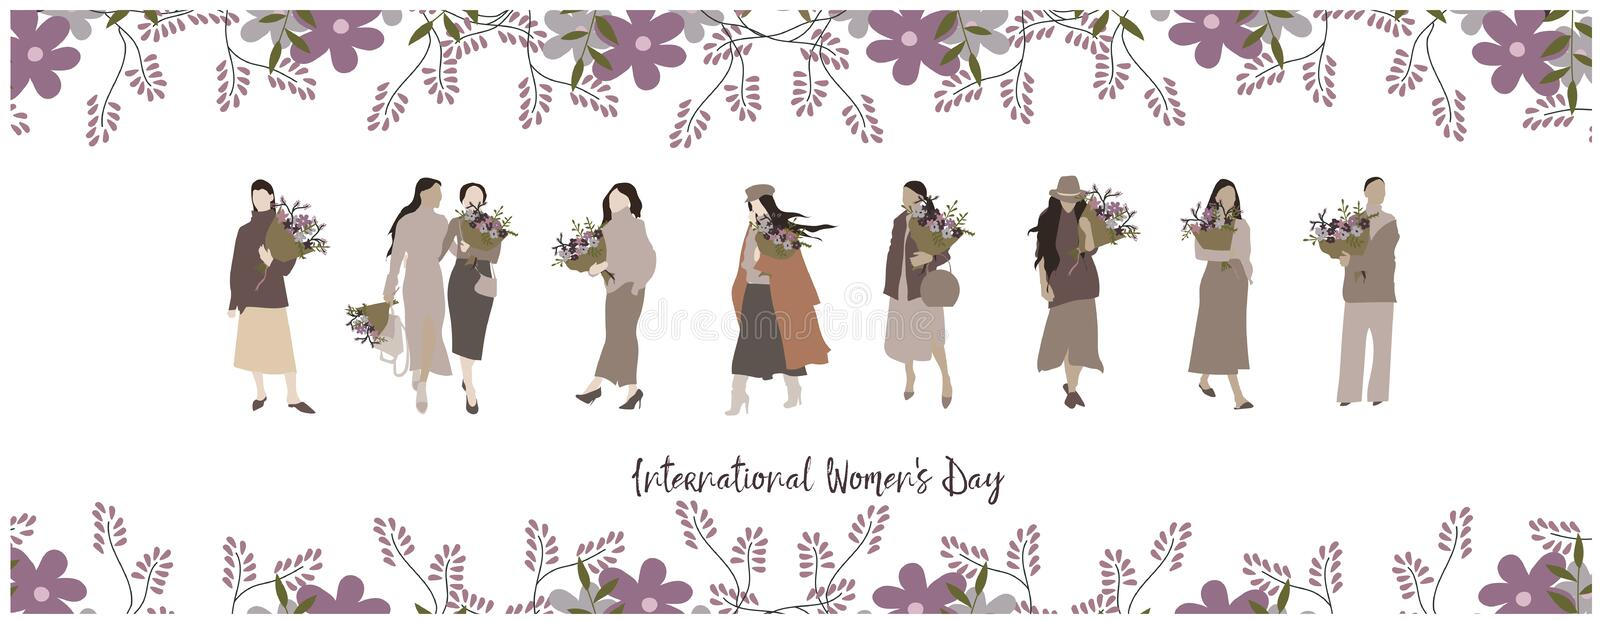 International Womens Day. Girl with a bouquet of flowers. Hand drawn fashion woman. Young woman or girl dressed in trendy clothes. Hand drawn Womens Day banner vector illustration